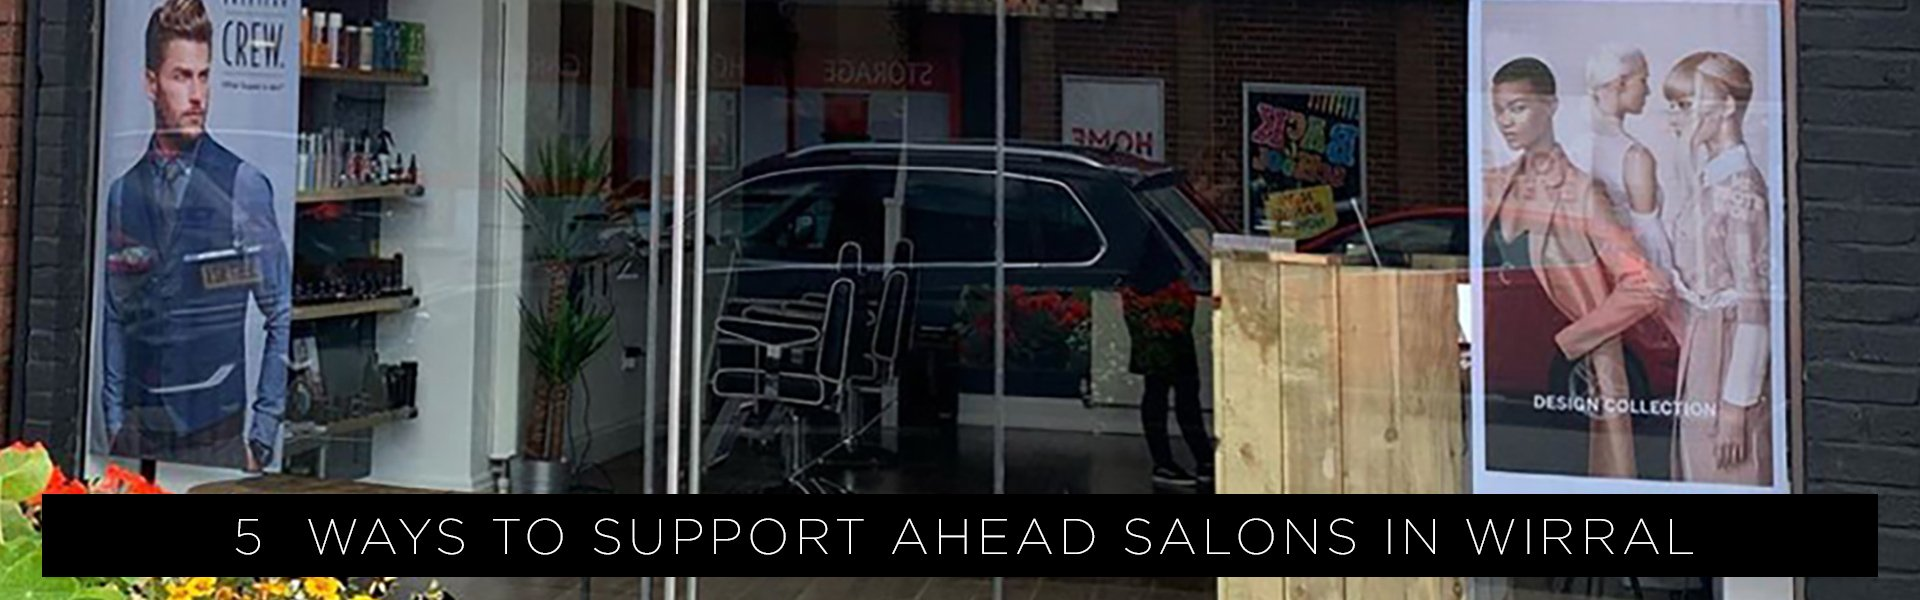 5 Ways To Support Ahead Salons in Wirral 1